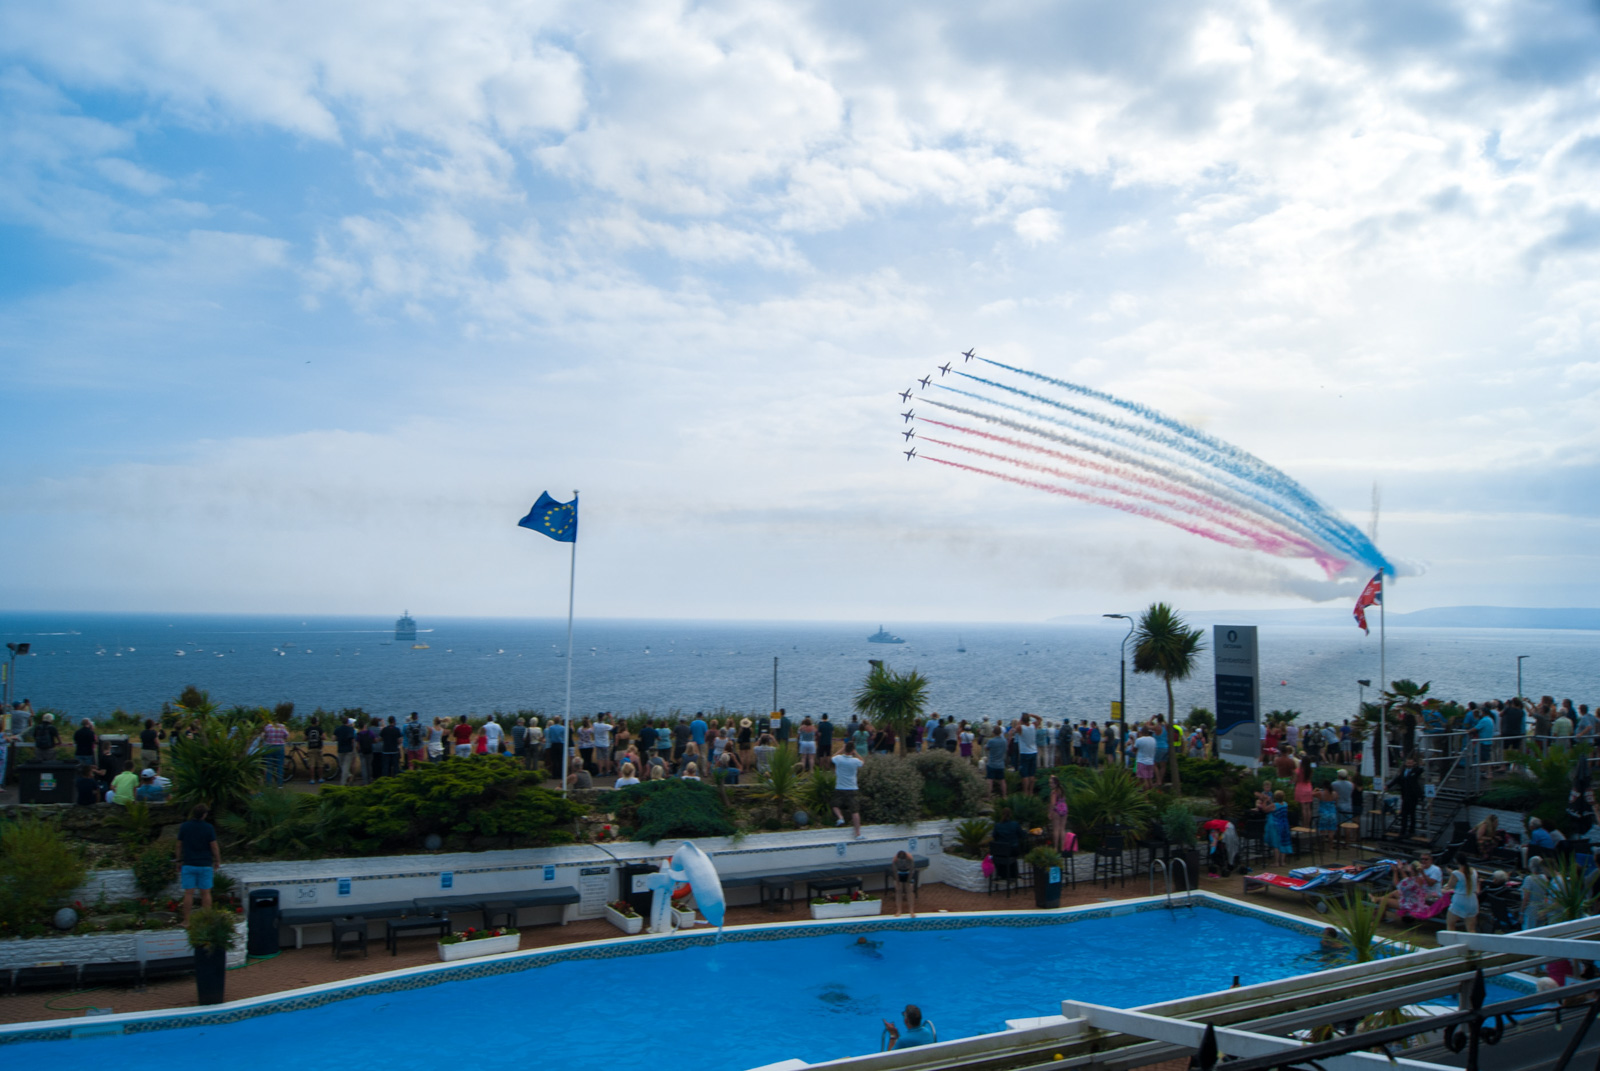 The Red Arrows over Cumberland Hotel Pool